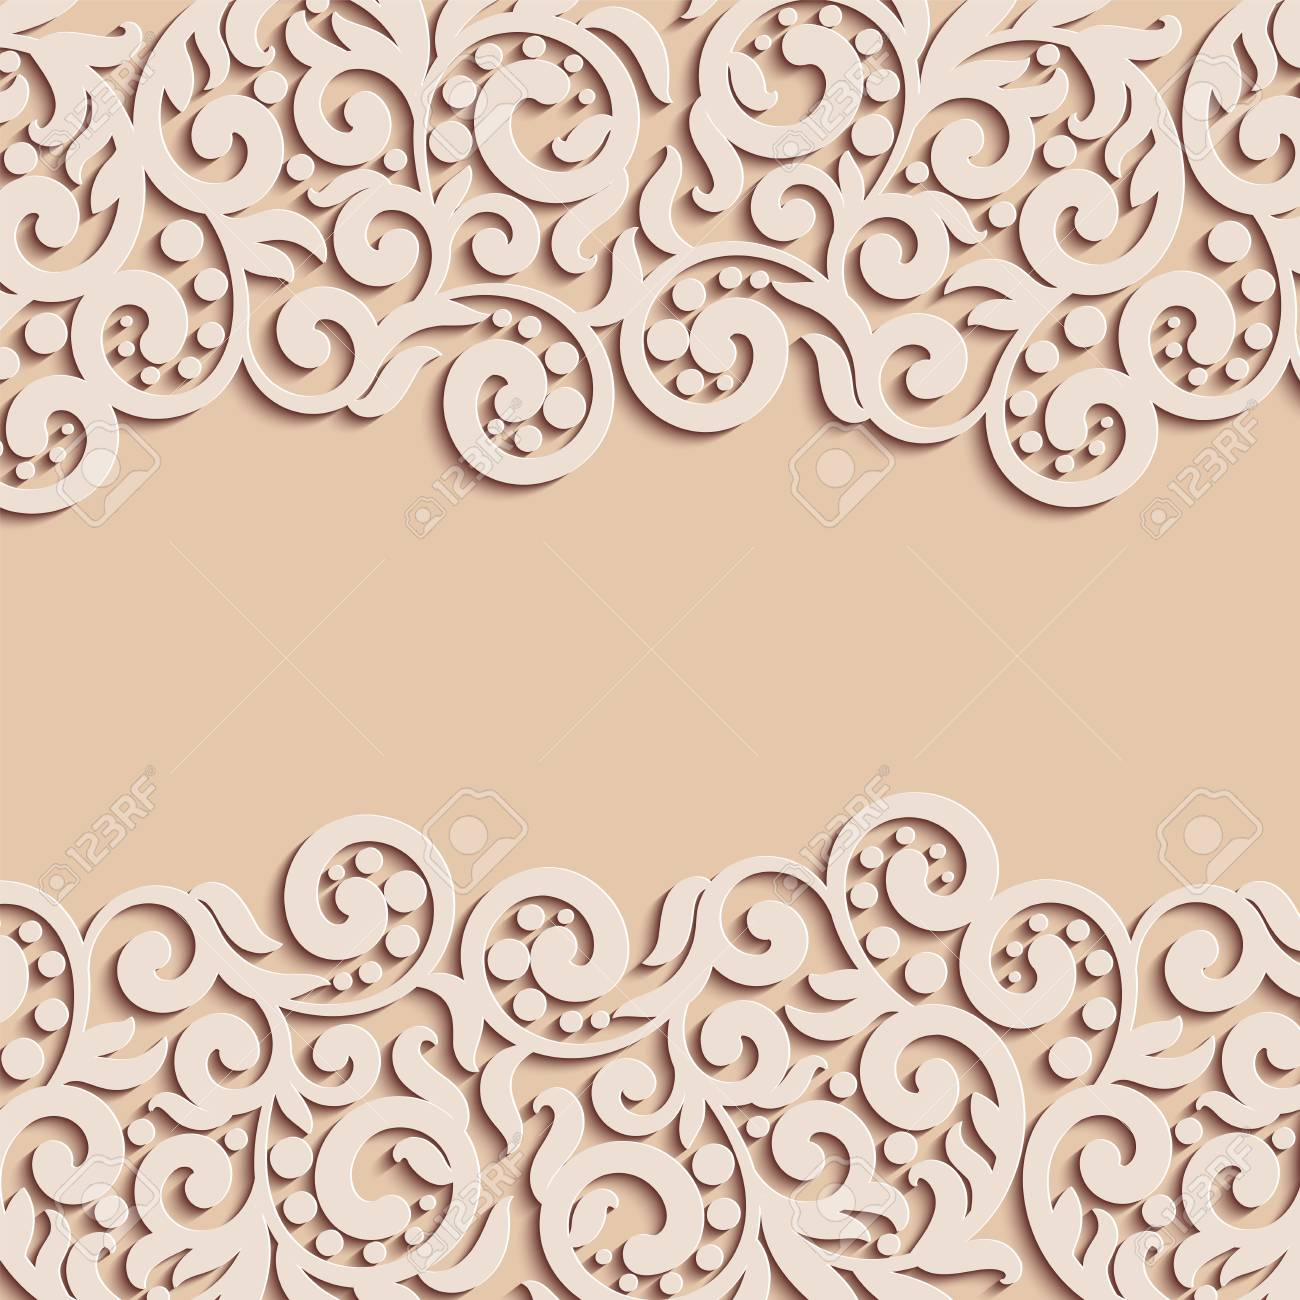 Vector Floral Swirls Decoration Abstract 3d Background For